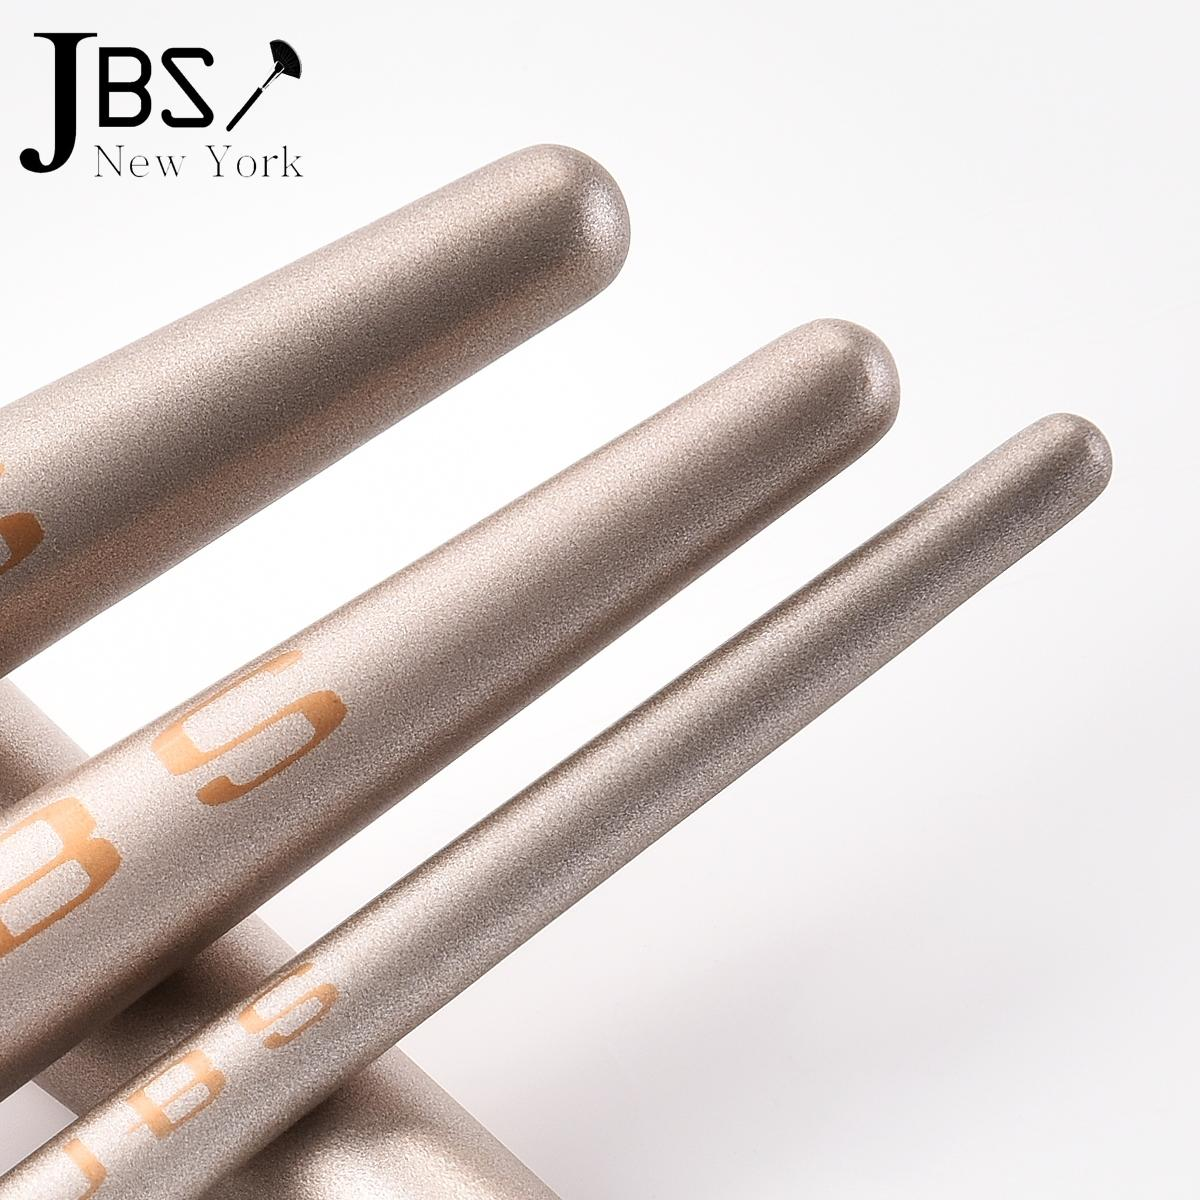 Fitur Jbs New York Kuas Makeup Brush 6 Set Make Up K069 Dan 12 Eyerush Gold K 046 5